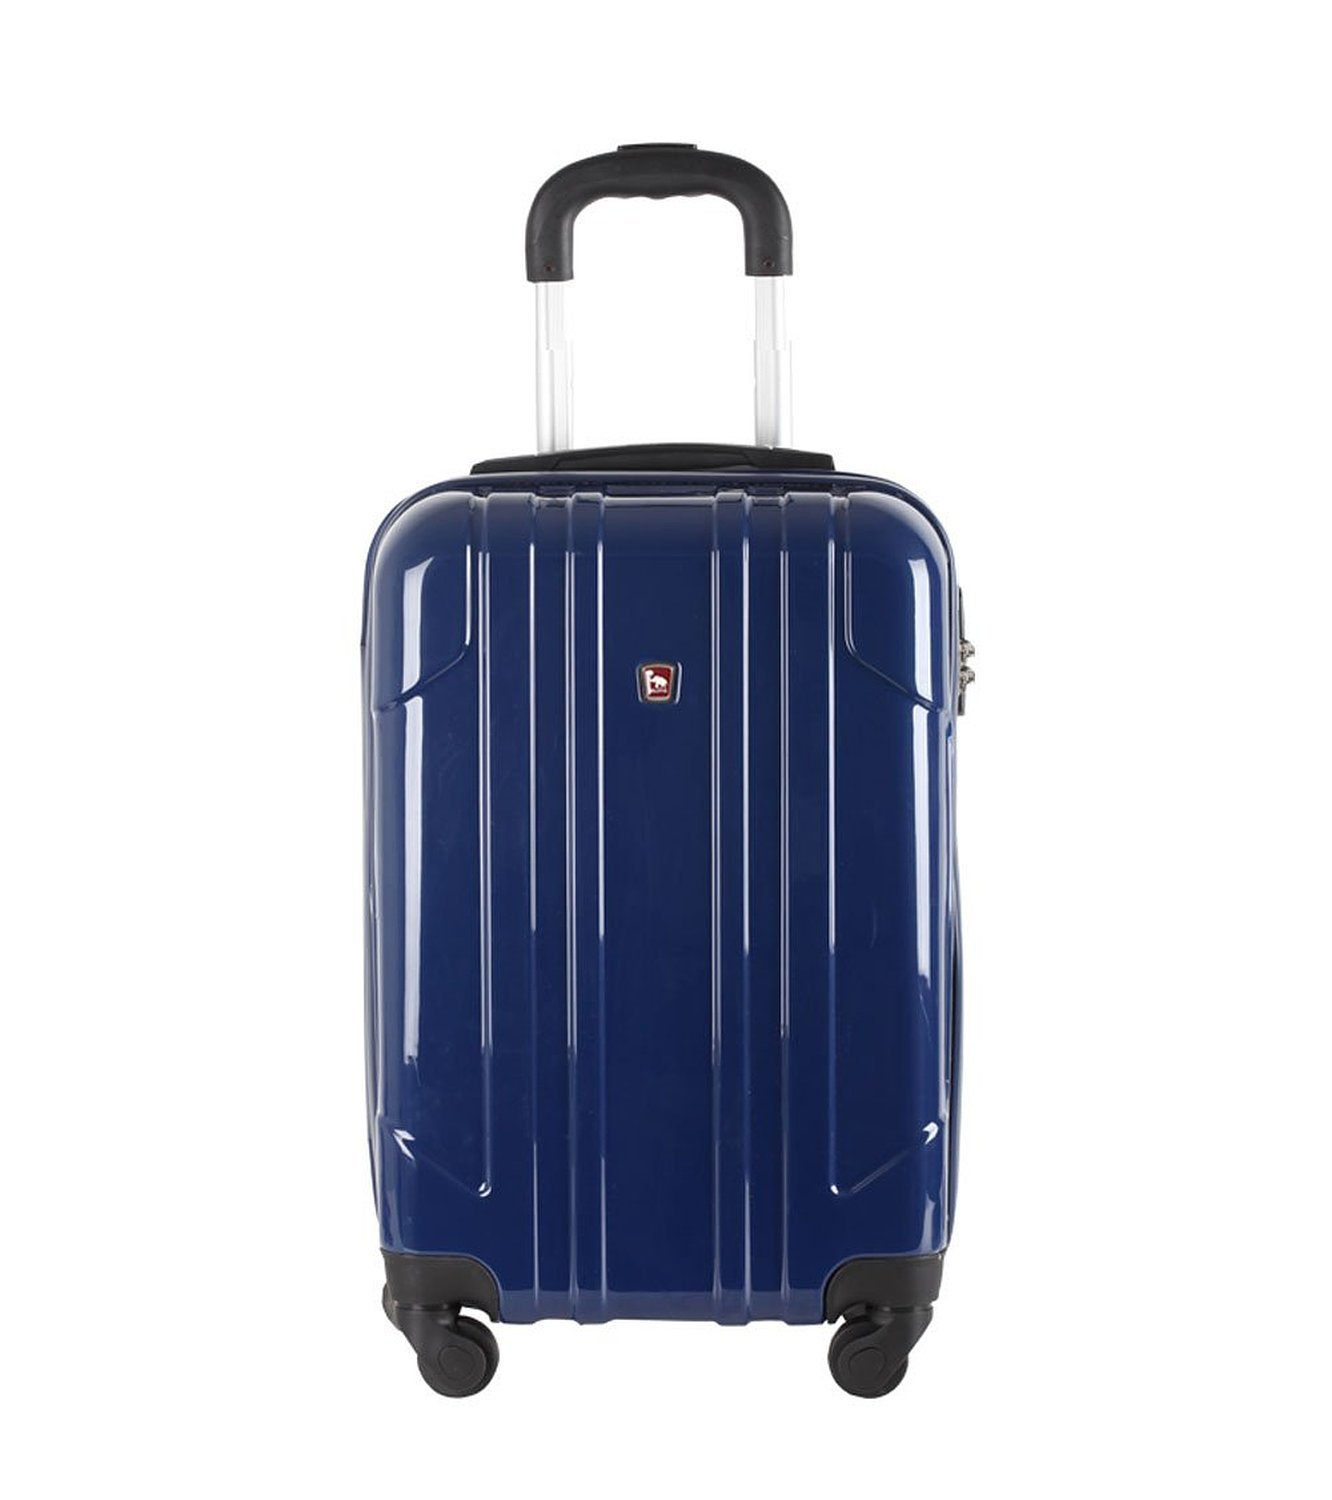 24-inch Luggage /& Travel Gear XF Luggage Sets Luggage Female Password Box Trolley Case Universal Wheel Suitcase Male Boarding Box 20-inch Color : A, Size : 20-inch